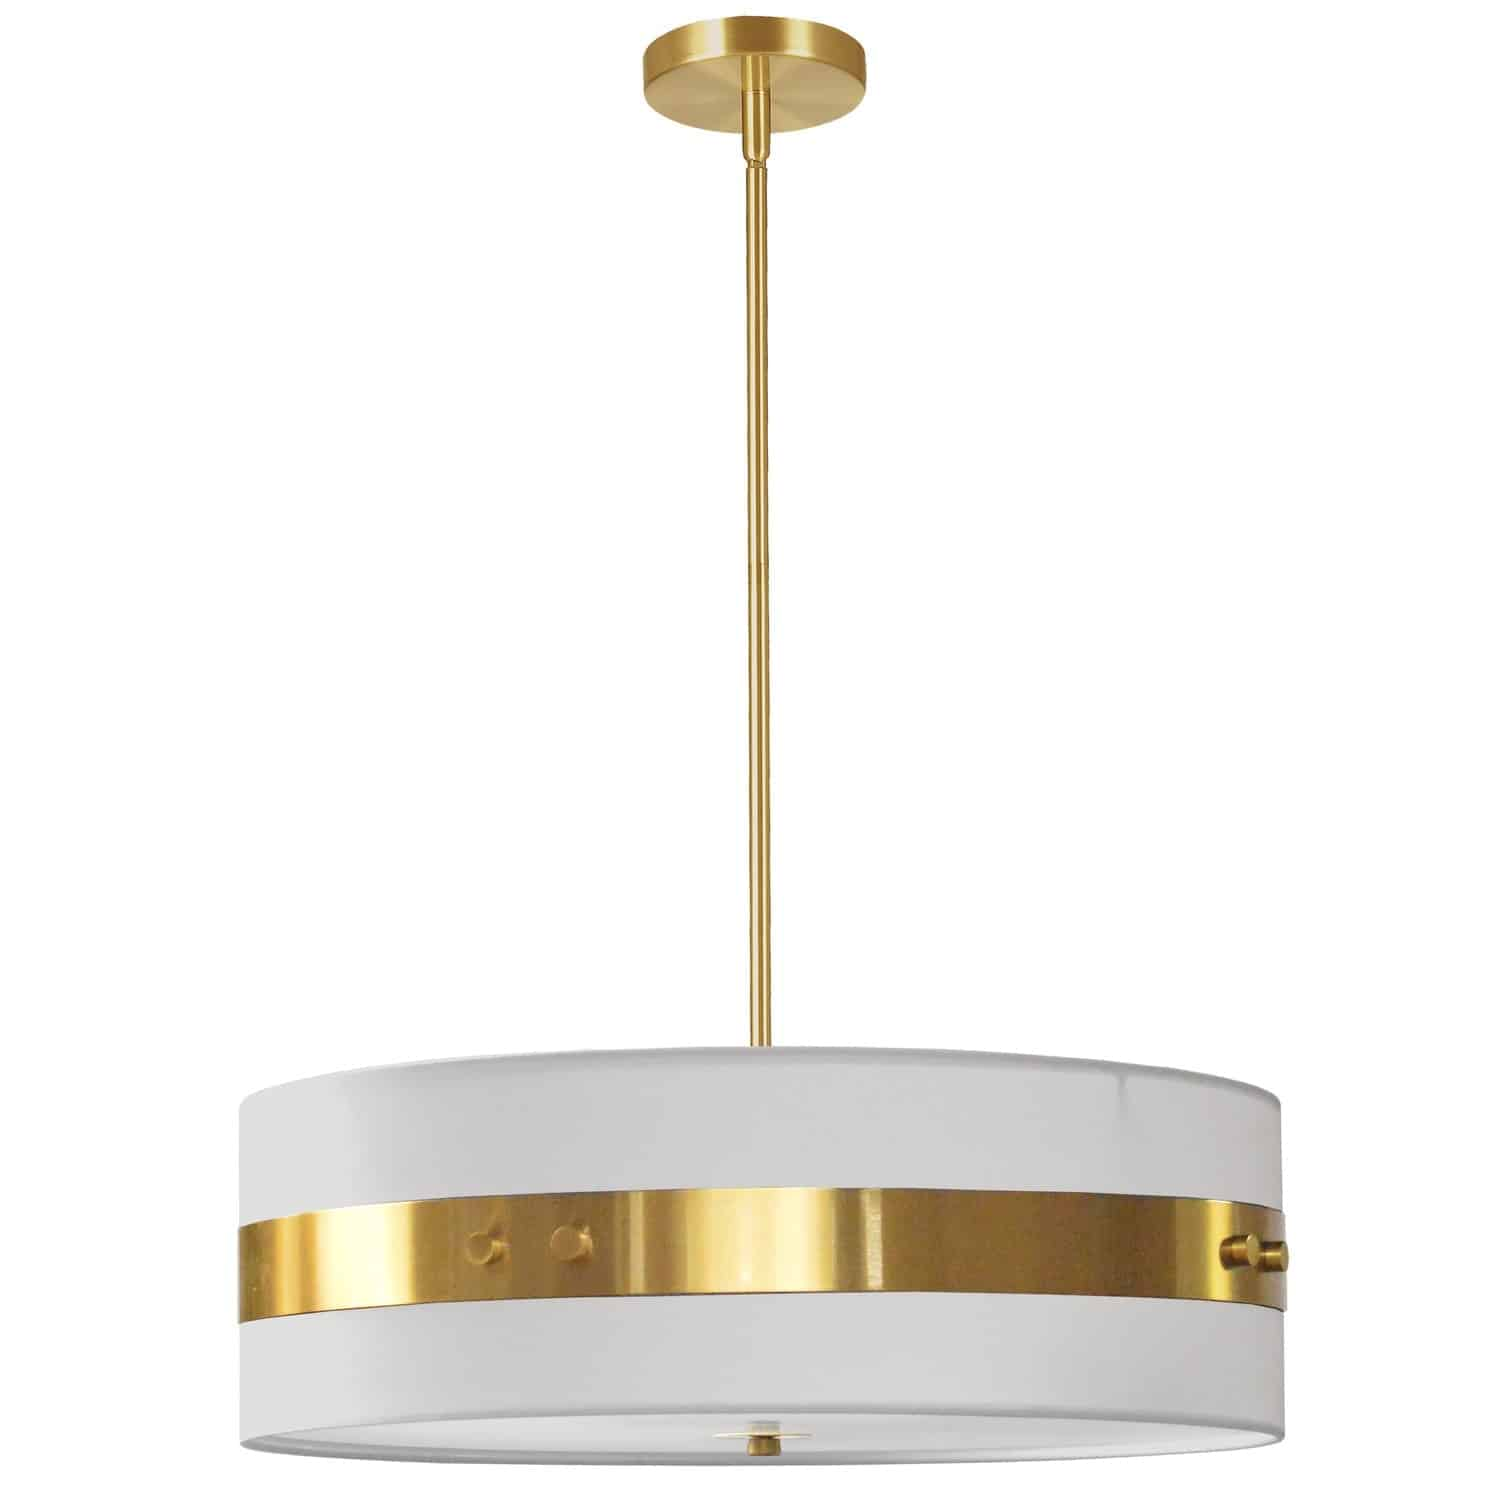 4 Light Incandescent Pendant Aged Brass Finish with White Shade